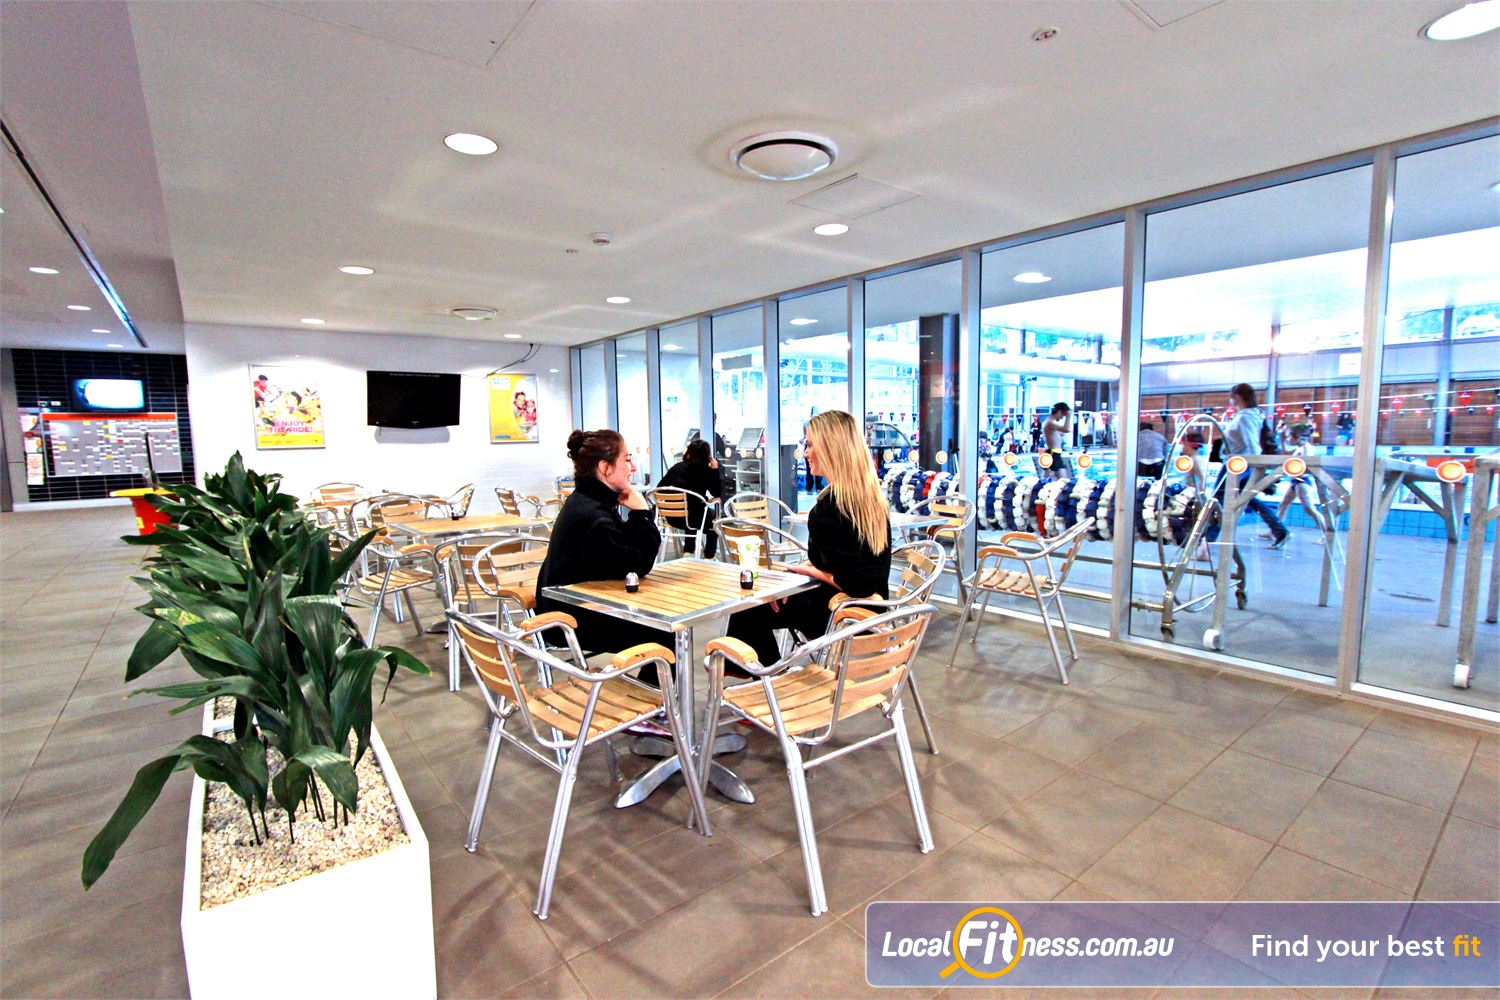 Macquarie University Sport & Aquatic Centre Near North Epping Enjoy your campus sport and fitness experience in our Macquarie University members lounge.